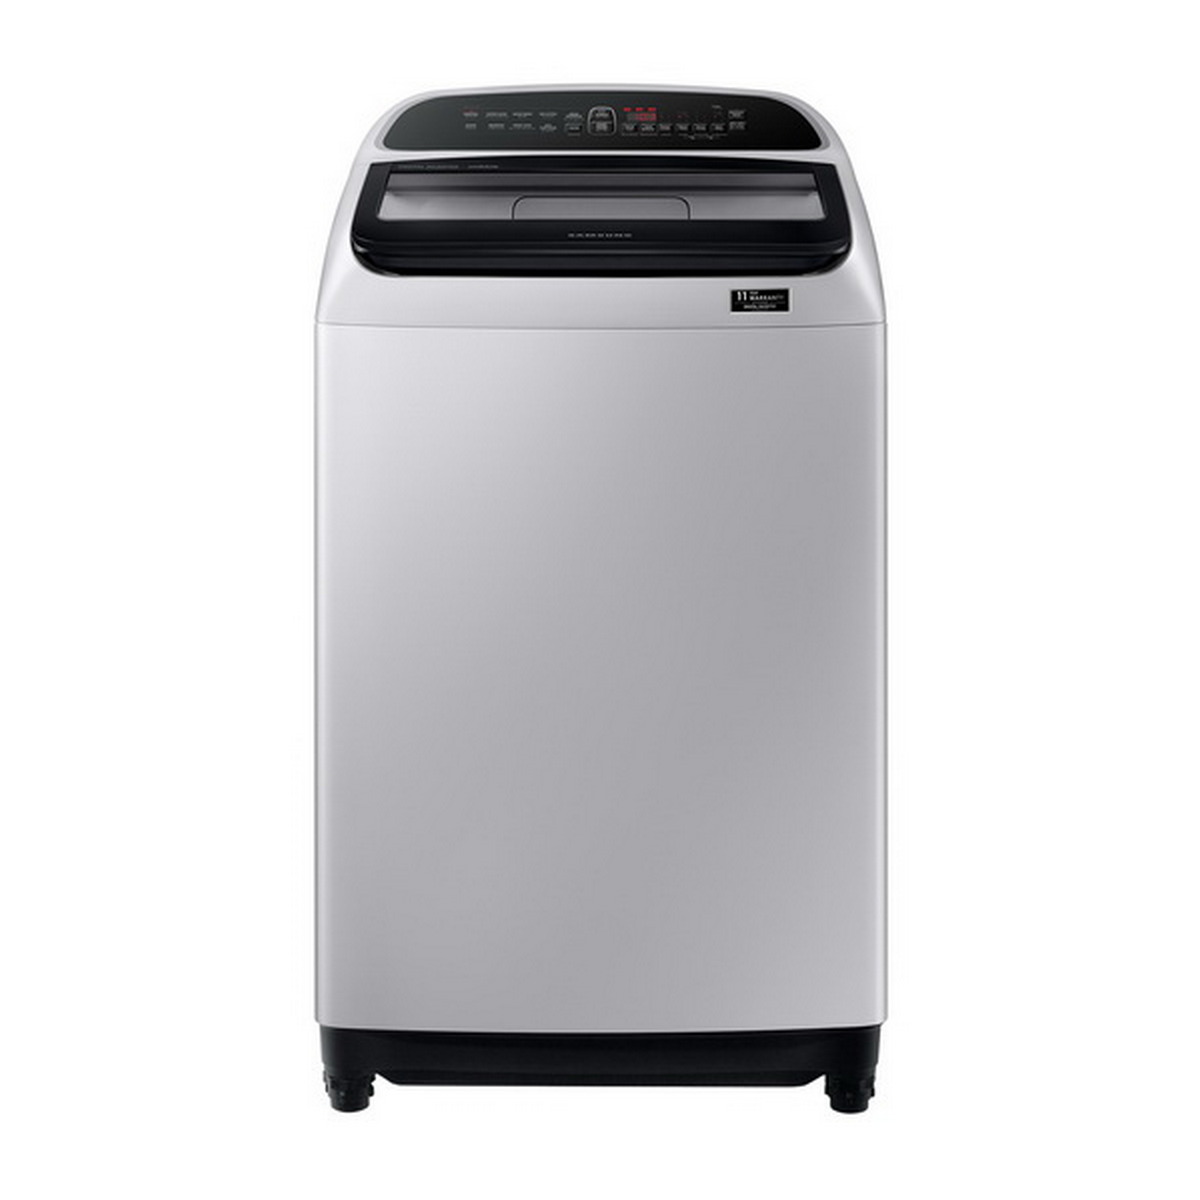 SAMSUNG Top Load Washing Machine 10 kg WA10T5260BYST